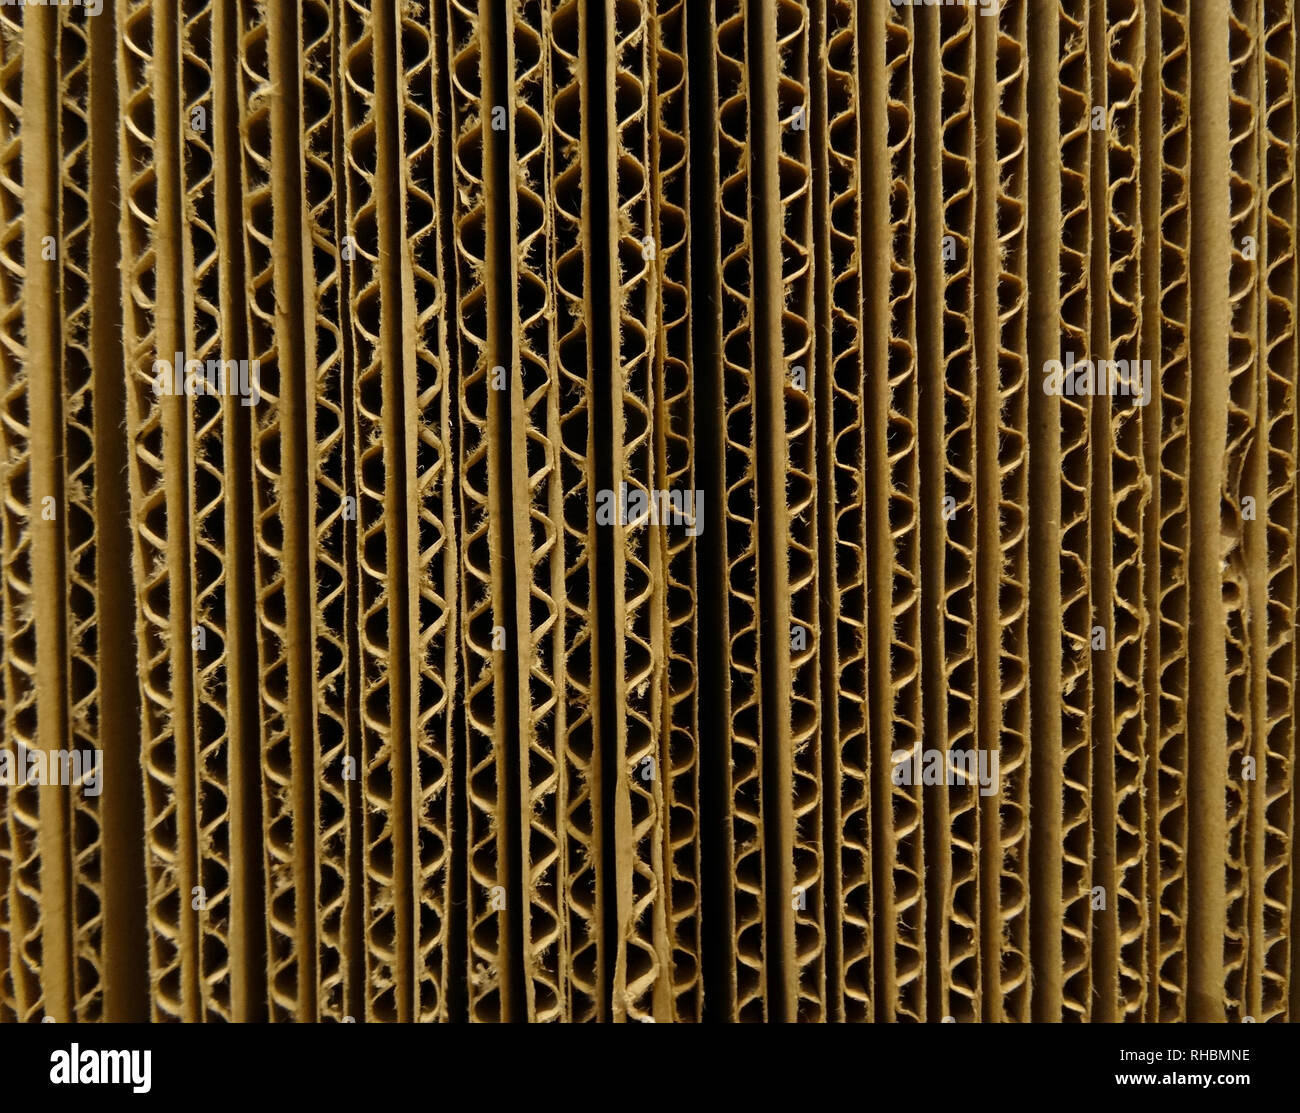 The End of Corrugated Cardboard Sheets Texture Background - Stock Image